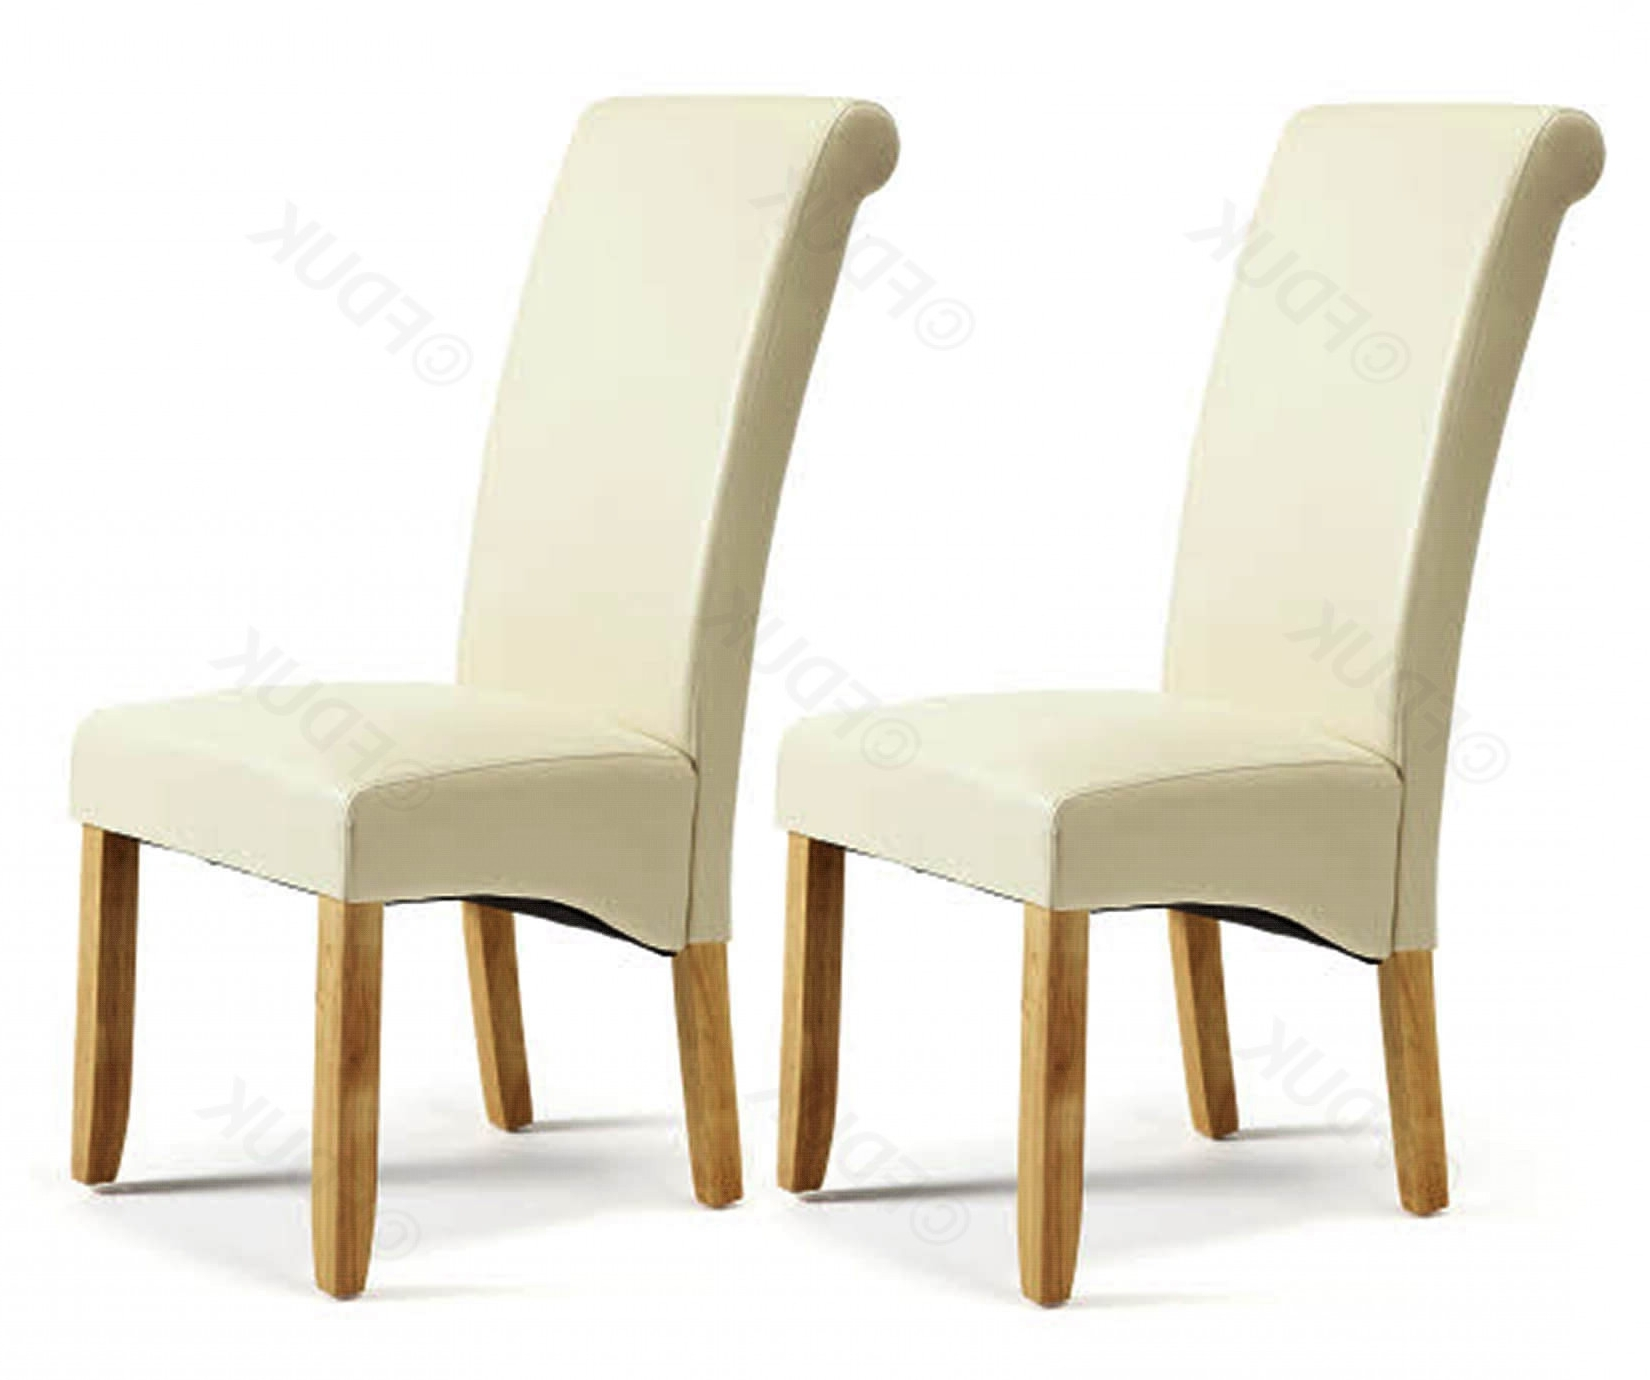 Cream Leather Dining Chairs With Popular Serene Furnishings Kingston Cream Chairs With Oak Legs Fduk Best Price  Guarantee We Will Beat Our Competitors Price! Give Our Sales Team A Call On (View 13 of 25)